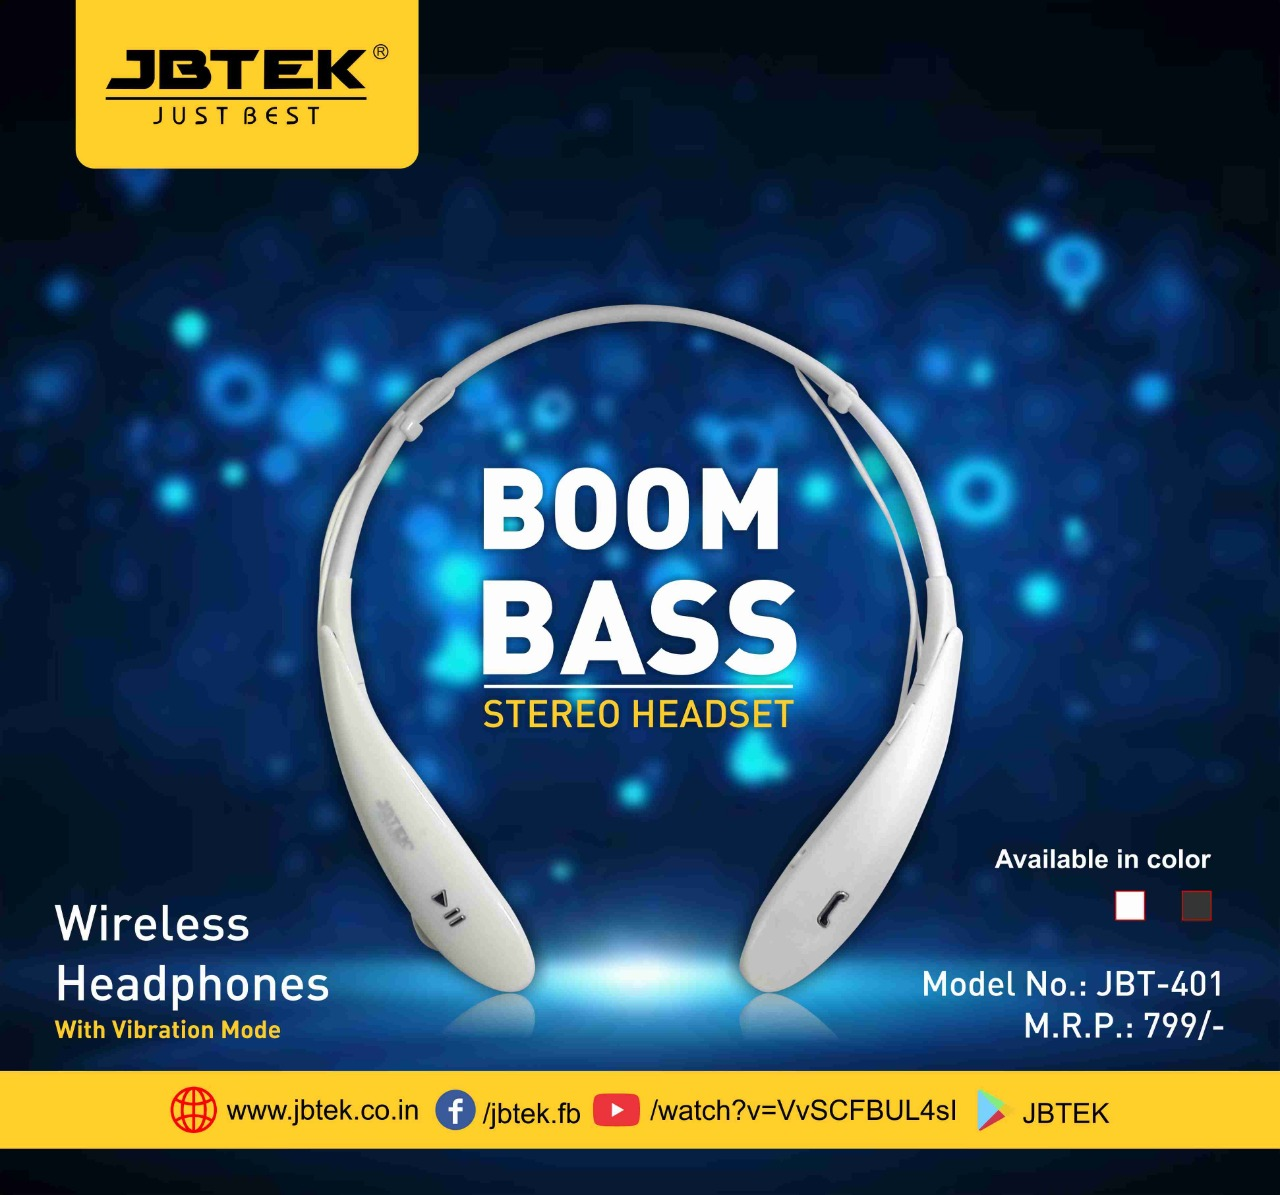 jbtek JBT-401 stereo Headset wireless